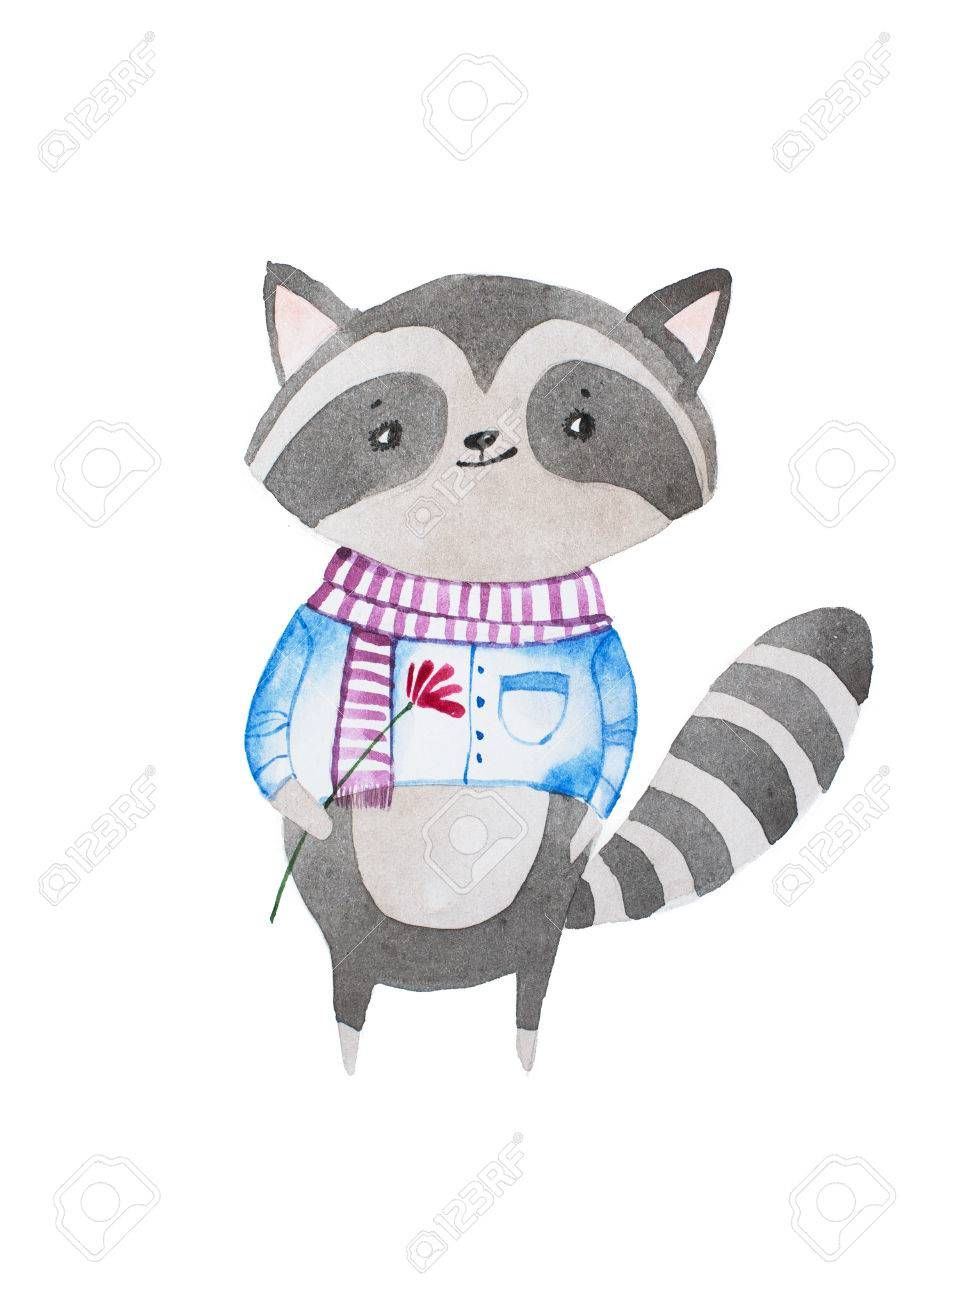 Hand Drawn Cartoon Character Shy Cute Little Baby Raccoon Wearing Scarf And Shirt Holding A Flower Spons Raccoon Illustration Baby Raccoon Cute Little Baby